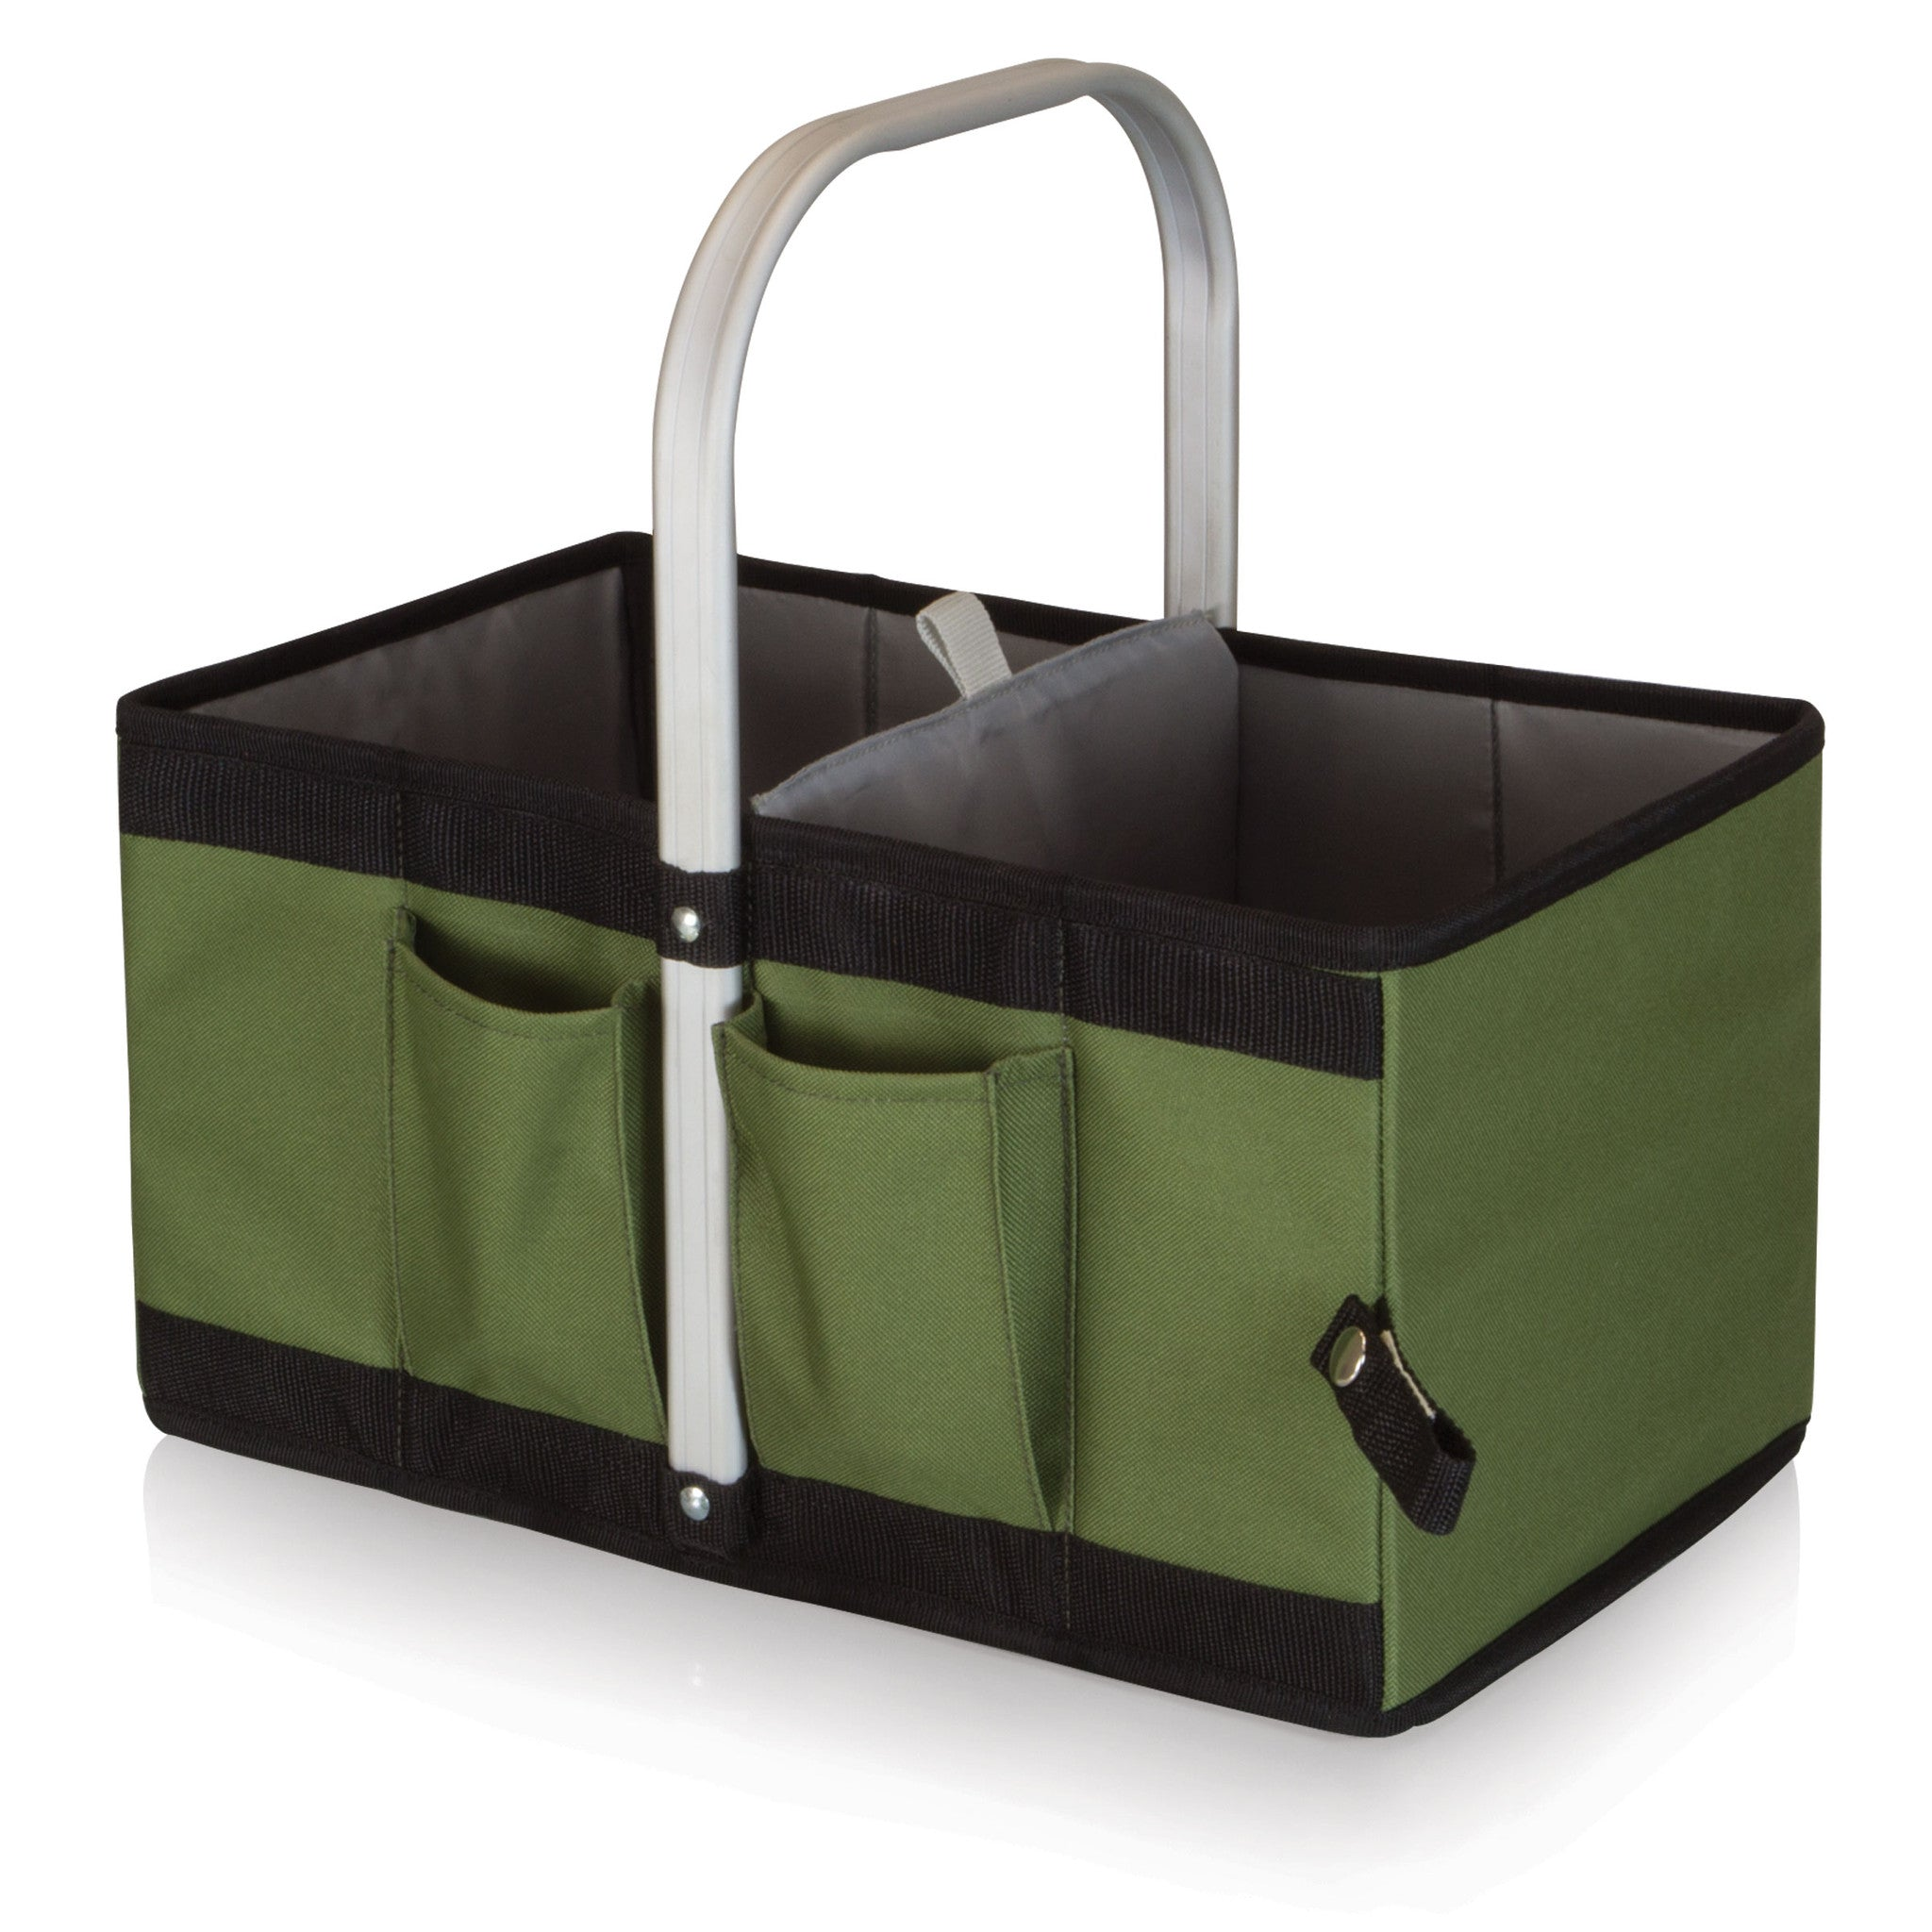 Garden Caddy Collapsible Basket with Tools – gobagdepot